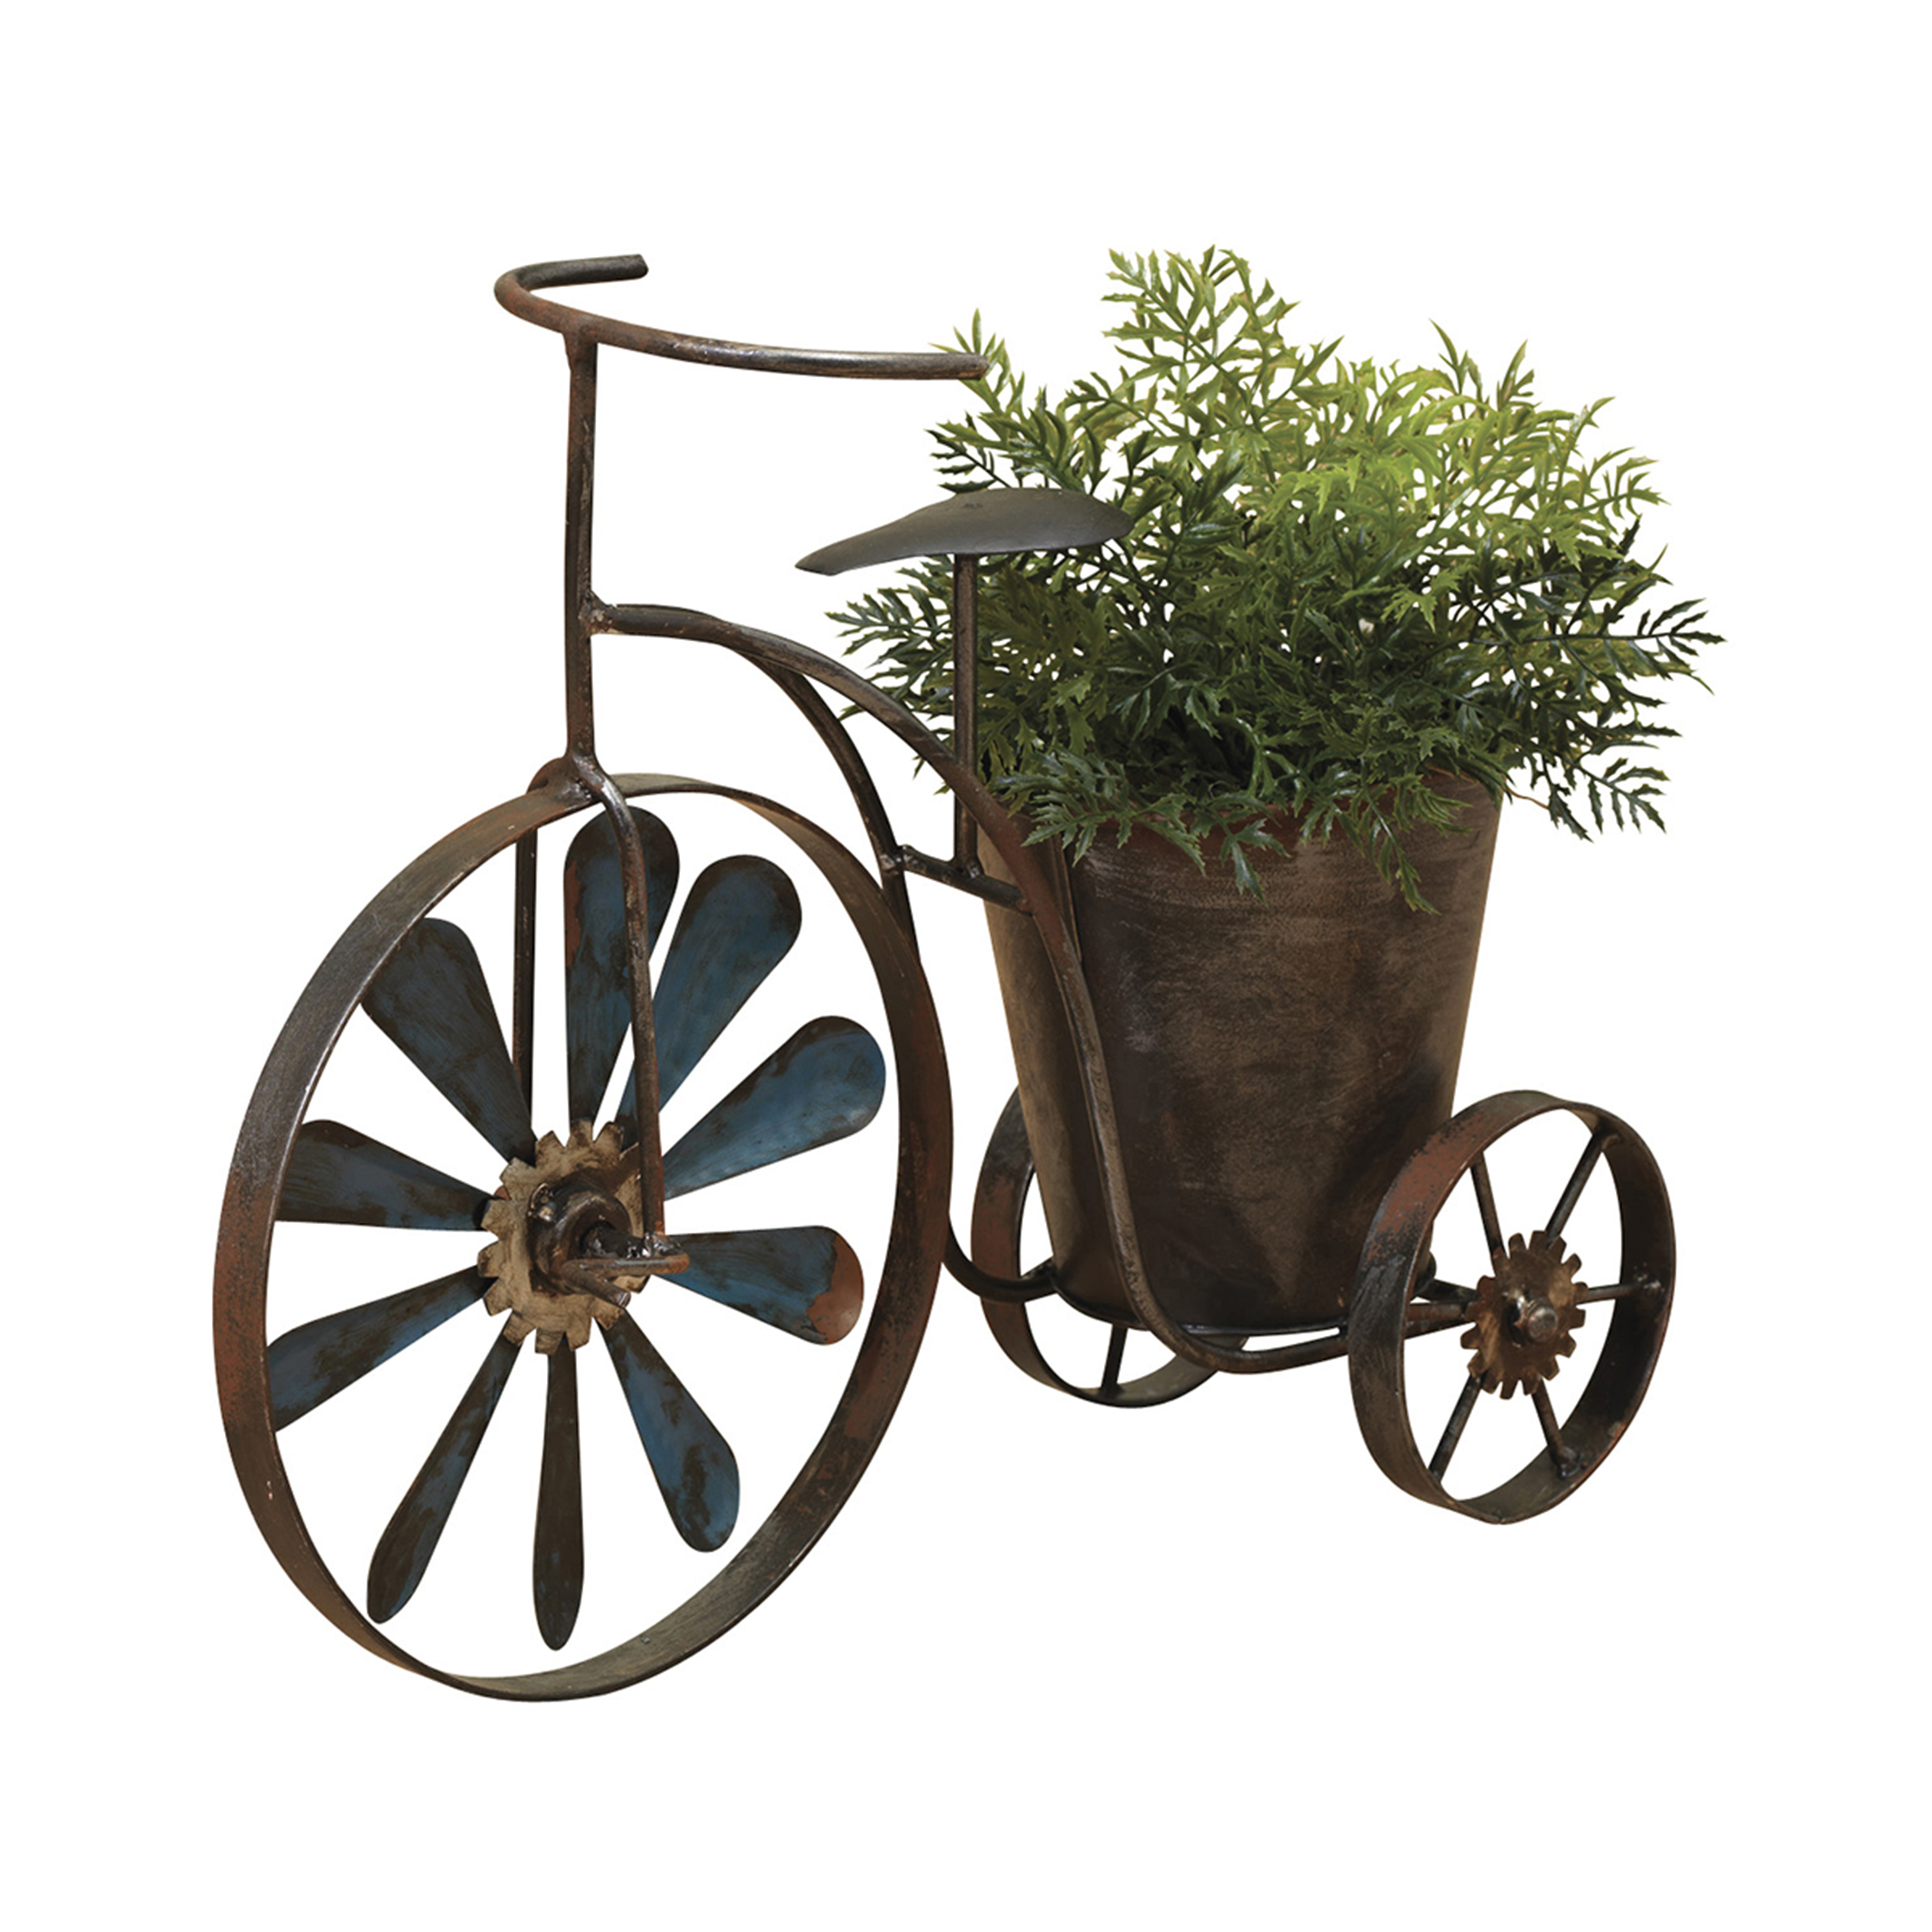 Gerson Assorted 14 6 Inch Long Metal Antique Tricycle Planters With Wind Spinner Spokes Set Of 2 Walmart Com Walmart Com